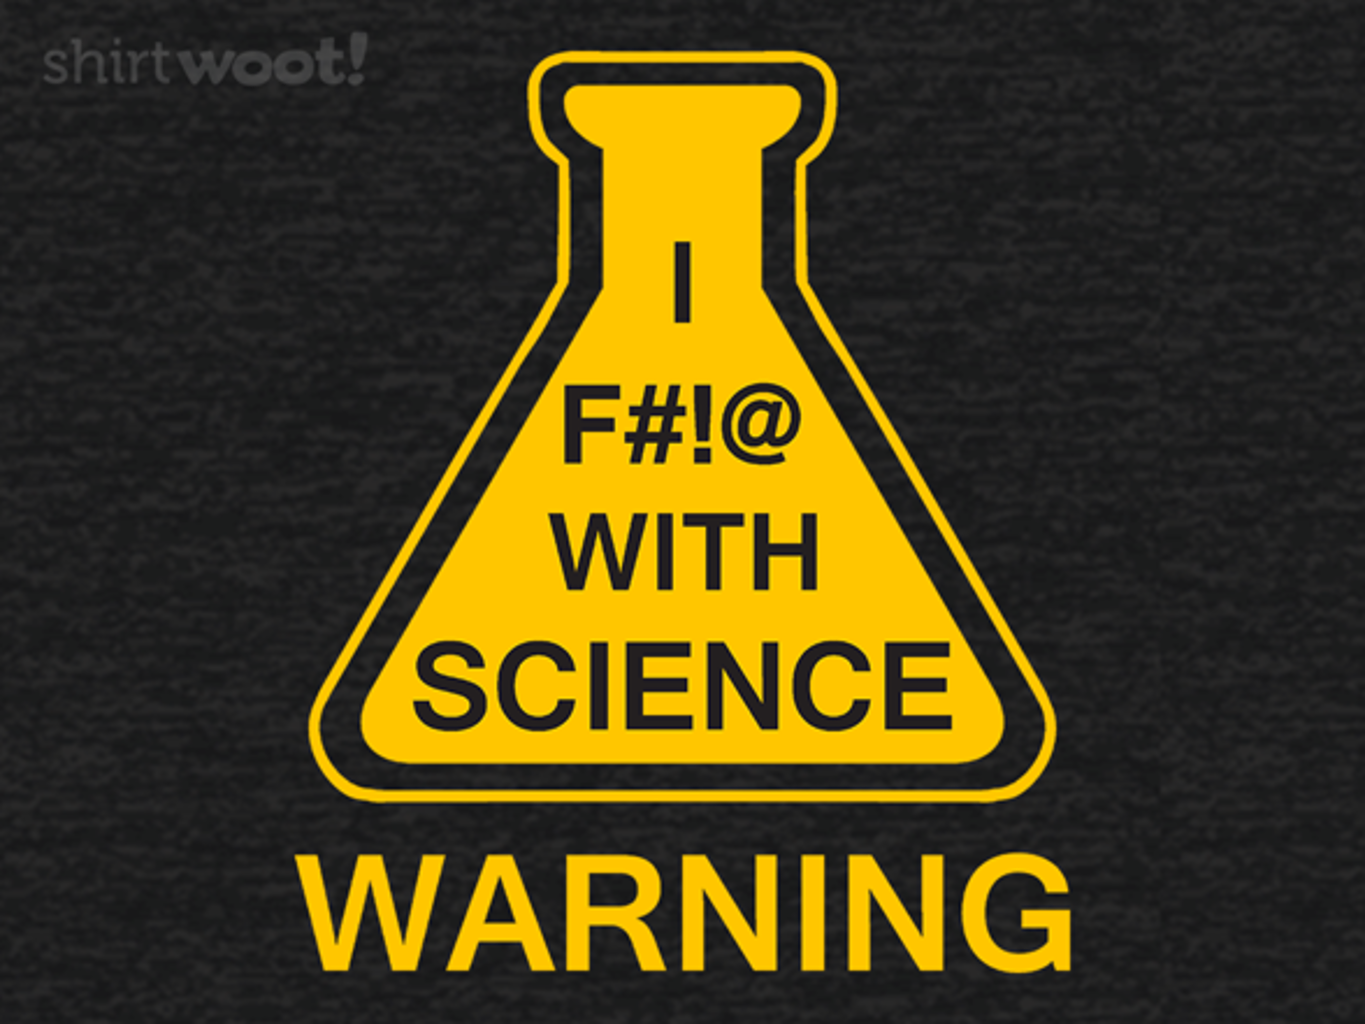 Woot!: Science Warning